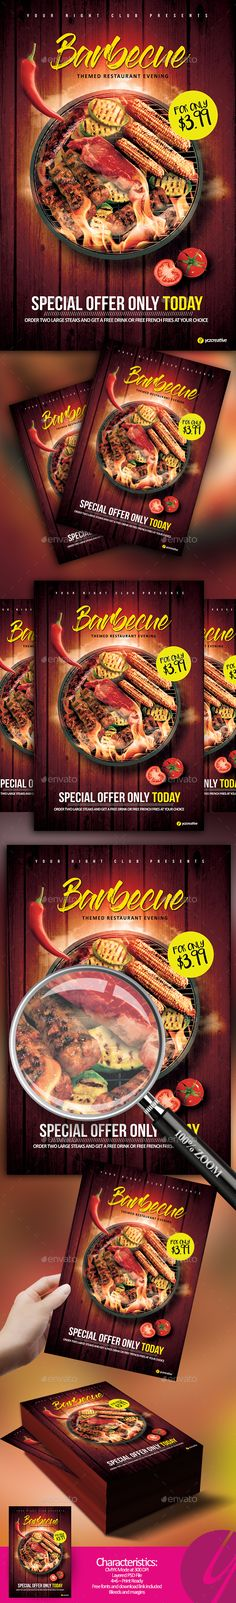 barbecue restaurant flyer by yczcreative barbecue restaurant e 20flyer special designed for your locationcharacteristics